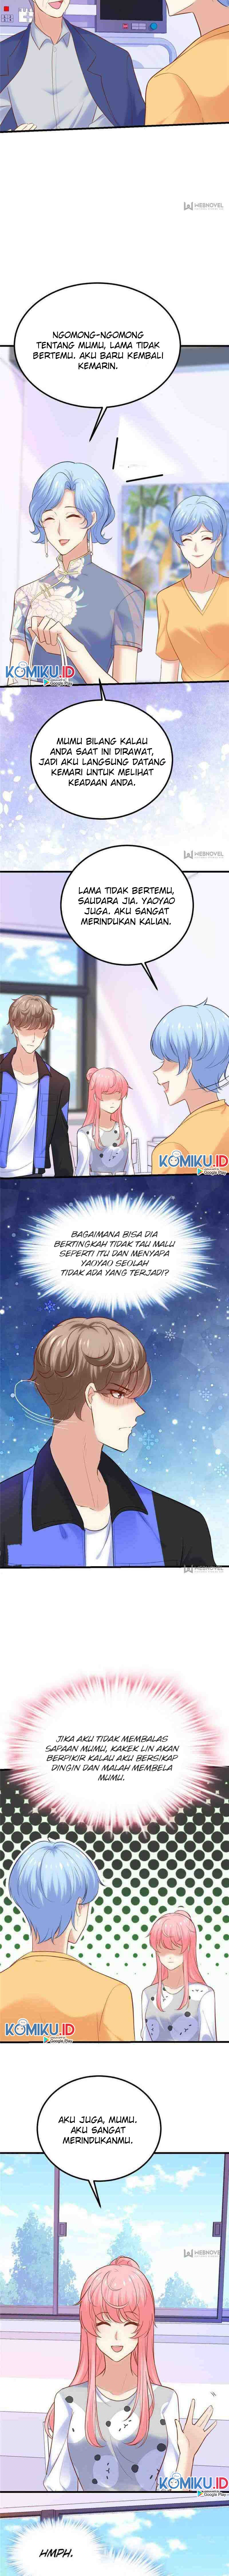 My Beautiful Time With You Chapter 153